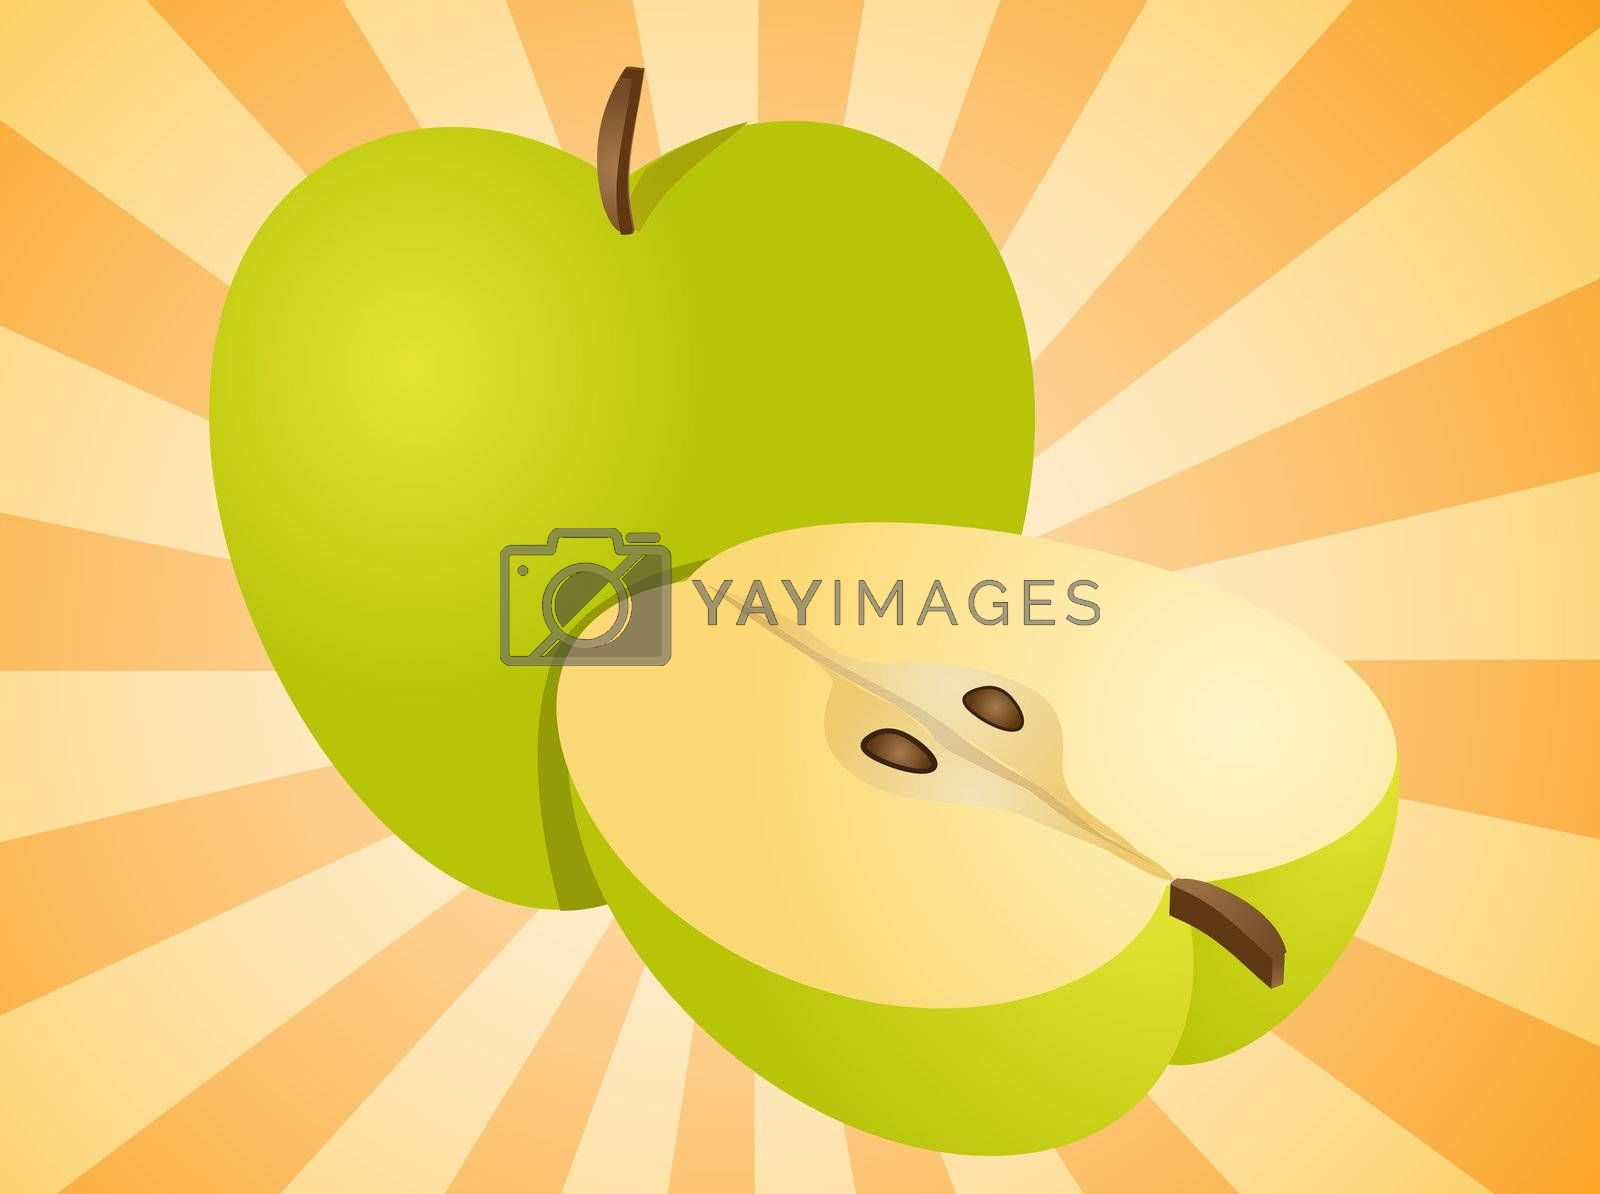 Royalty free image of Apple whole and half illustration by kgtoh